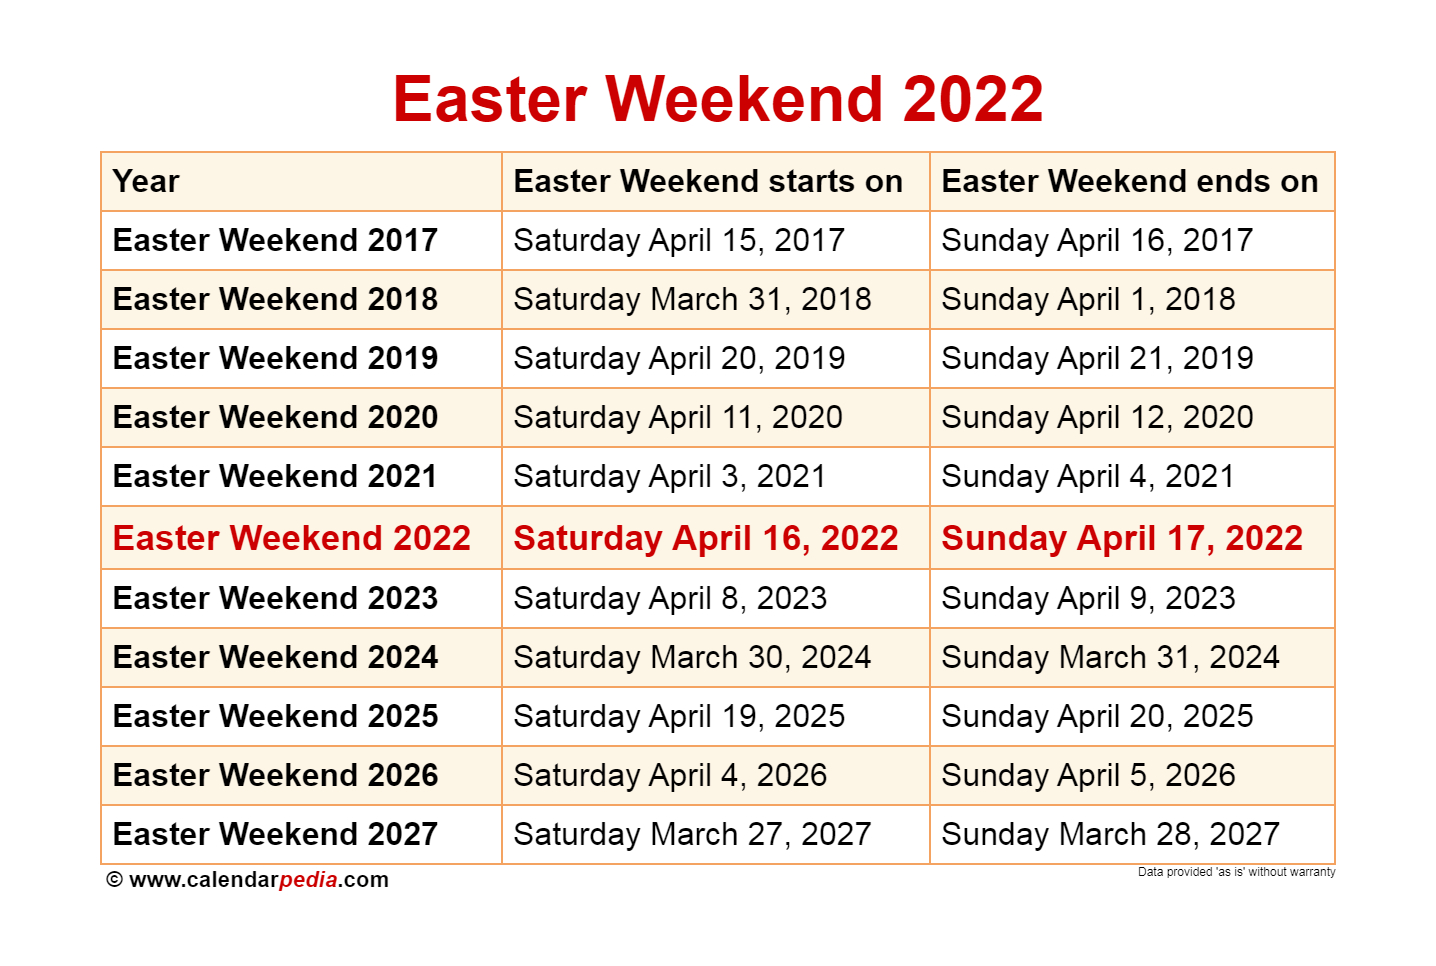 When Is Easter Weekend 2022?